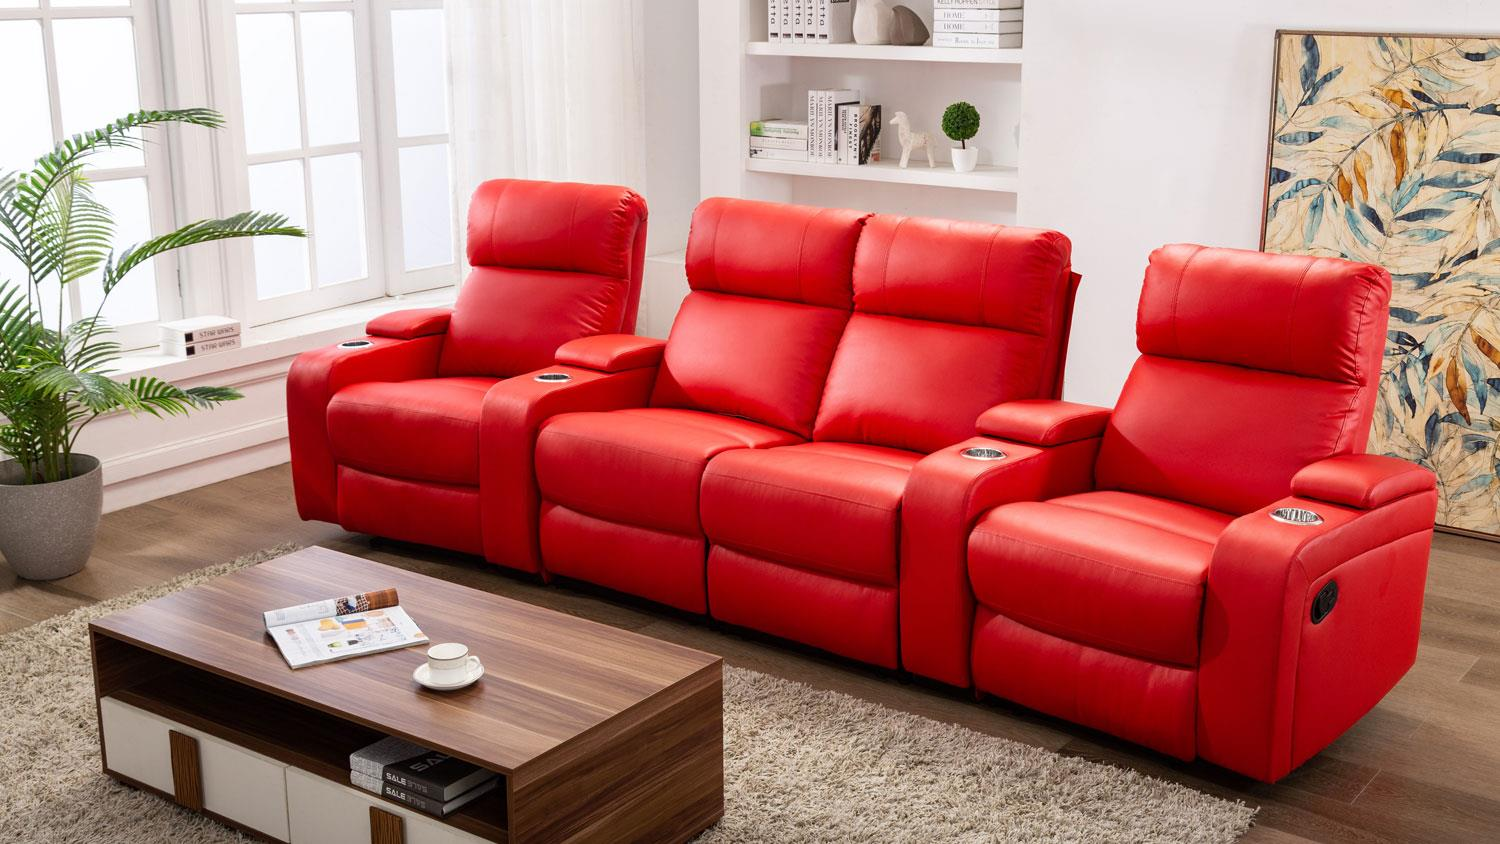 4er Couch Cinema Sofa 4er Kinosessel In Rot Mit Relaxfunktion